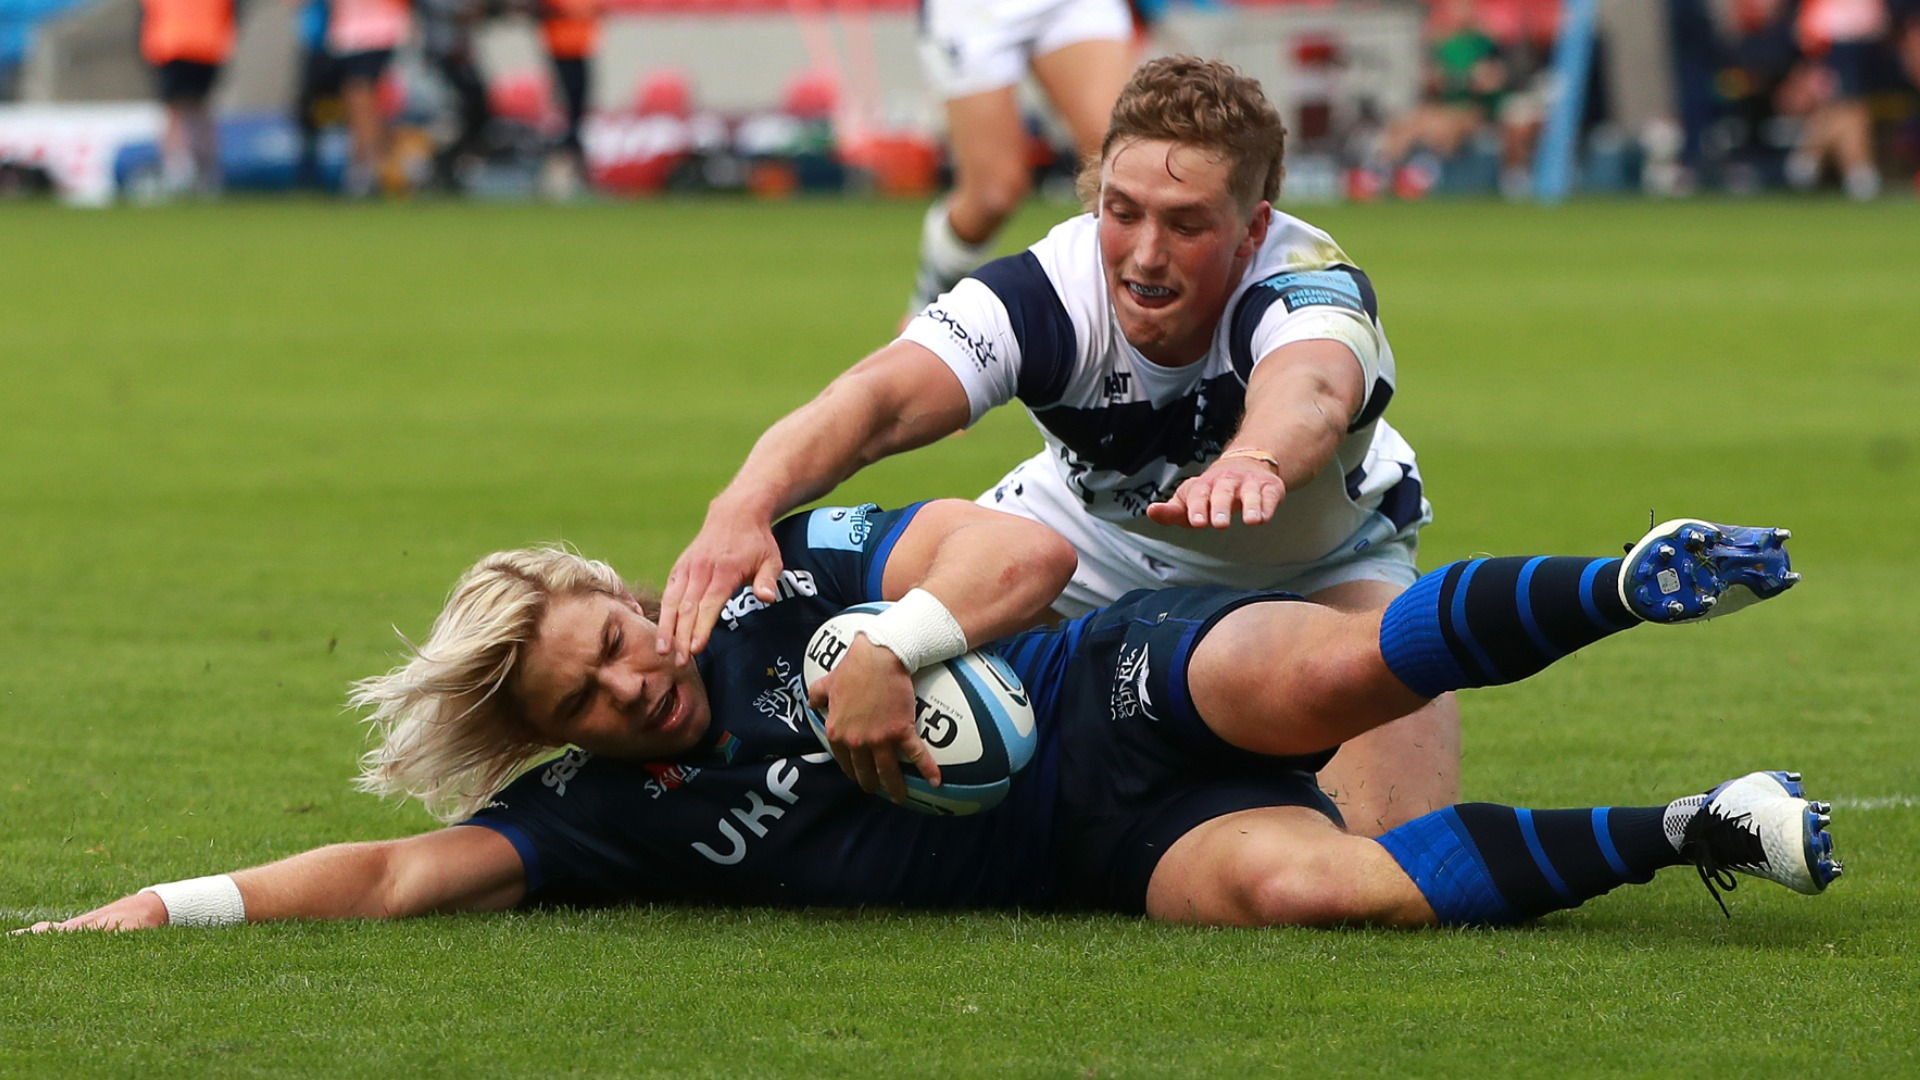 Sale Sharks 40-7 Bristol: Hosts overtake Bears to go second thanks to crushing win